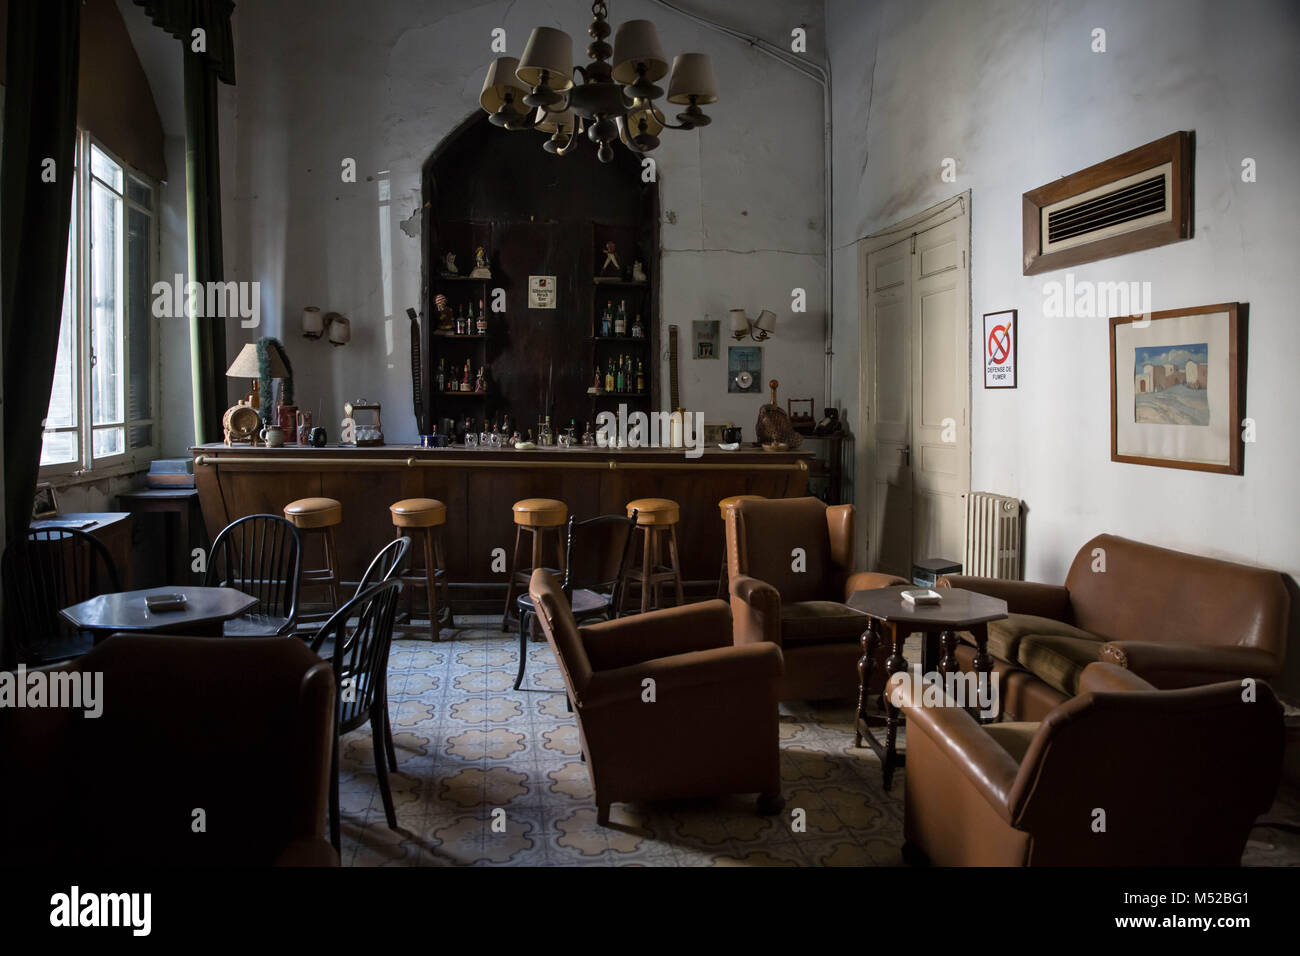 The bar of Aleppo's Baron Hotel. Aleppo's historic Baron Hotel was founded in 1911 by two Armenian brothers. - Stock Image